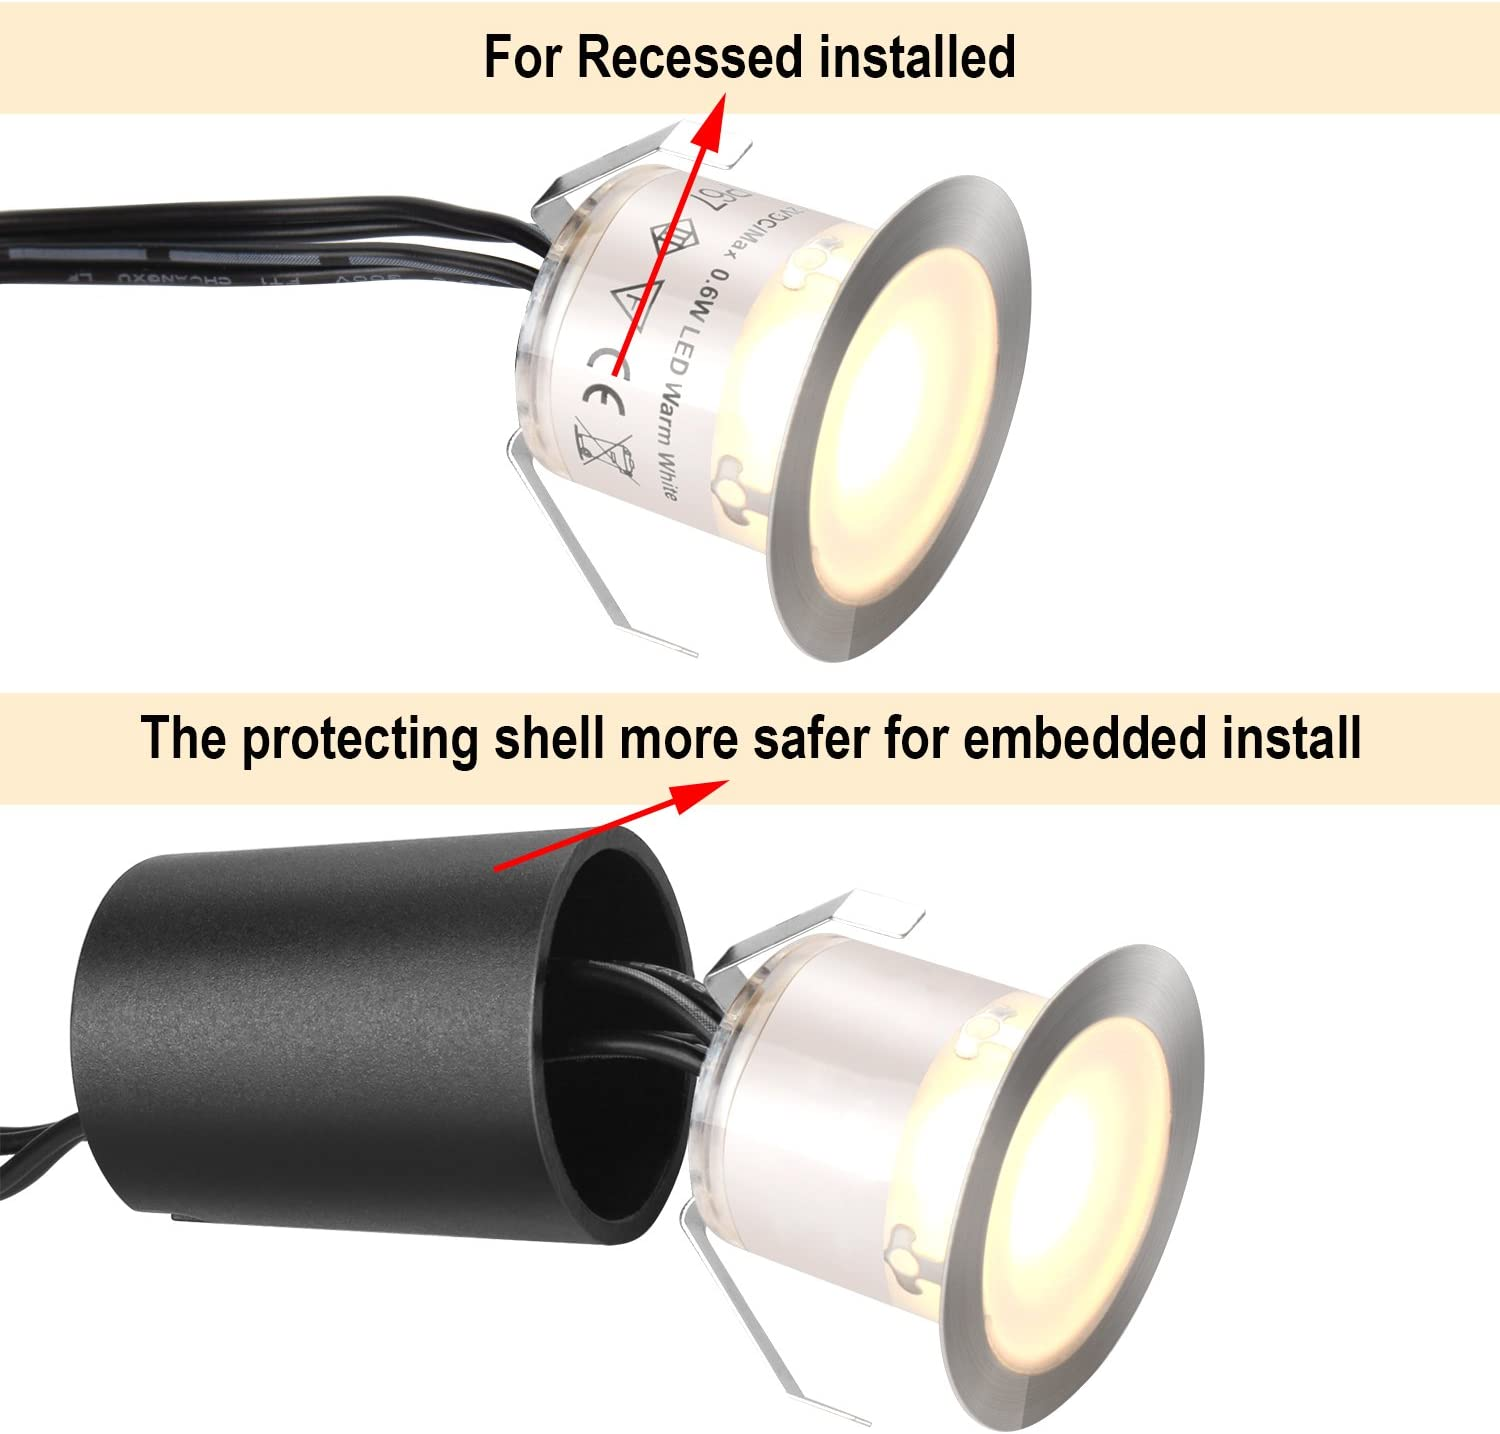 Recessed LED Deck Light Kits with Protecting Shell φ32mm, SMY In Ground Outdoor LED Landscape Lighting IP67 Waterproof, 12V Low Voltage for Garden, Yard Steps, Stair, Patio, Floor, Kitchen Decoration - -